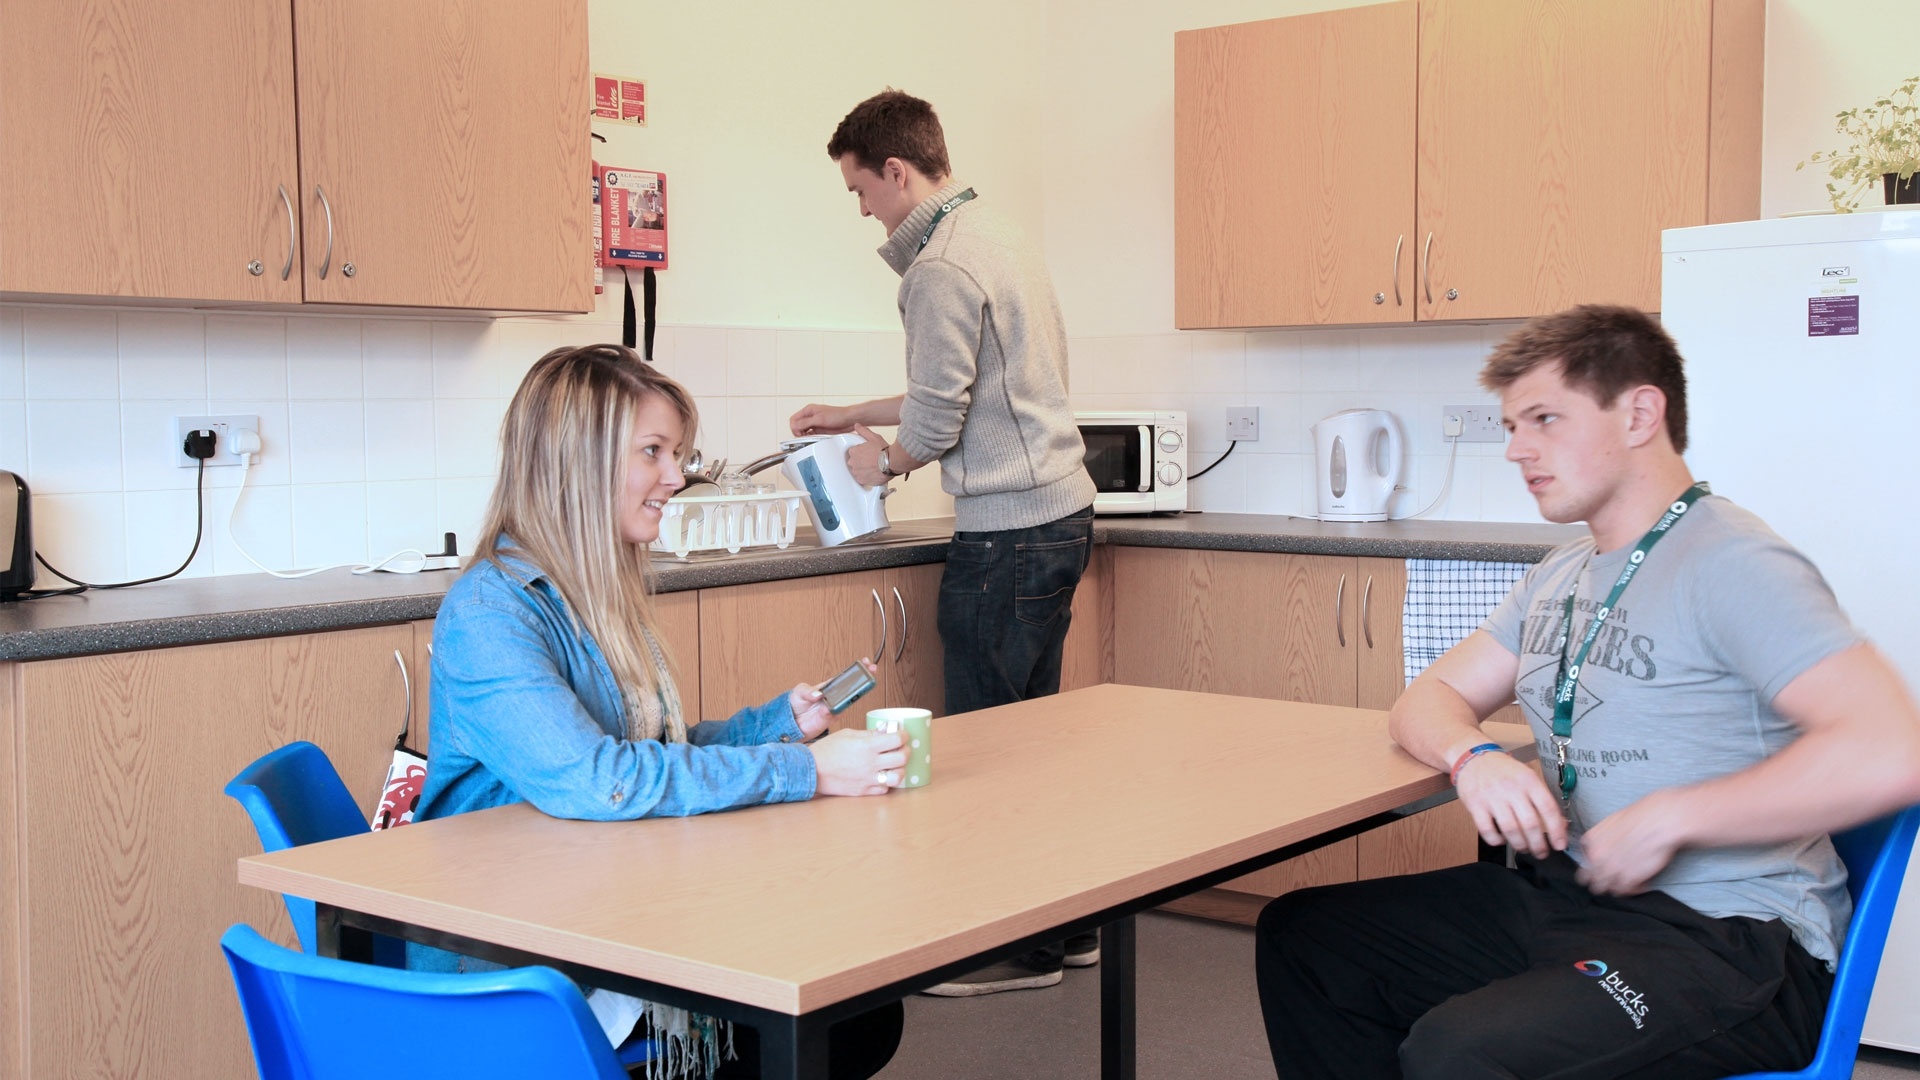 hree students in a communal kitchen at Hughenden Park Student Village